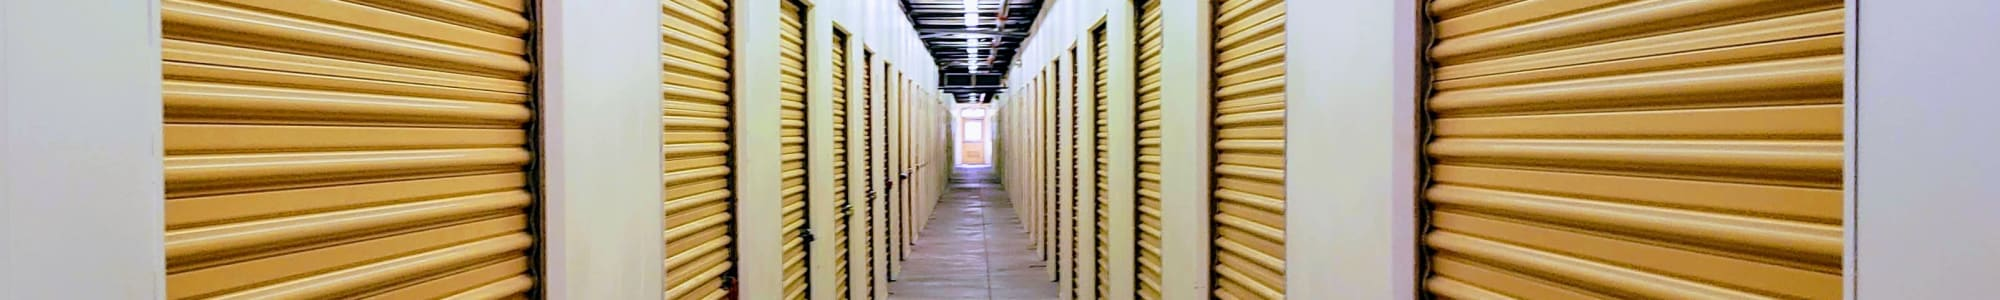 Contact us for your self storage needs in Tucson